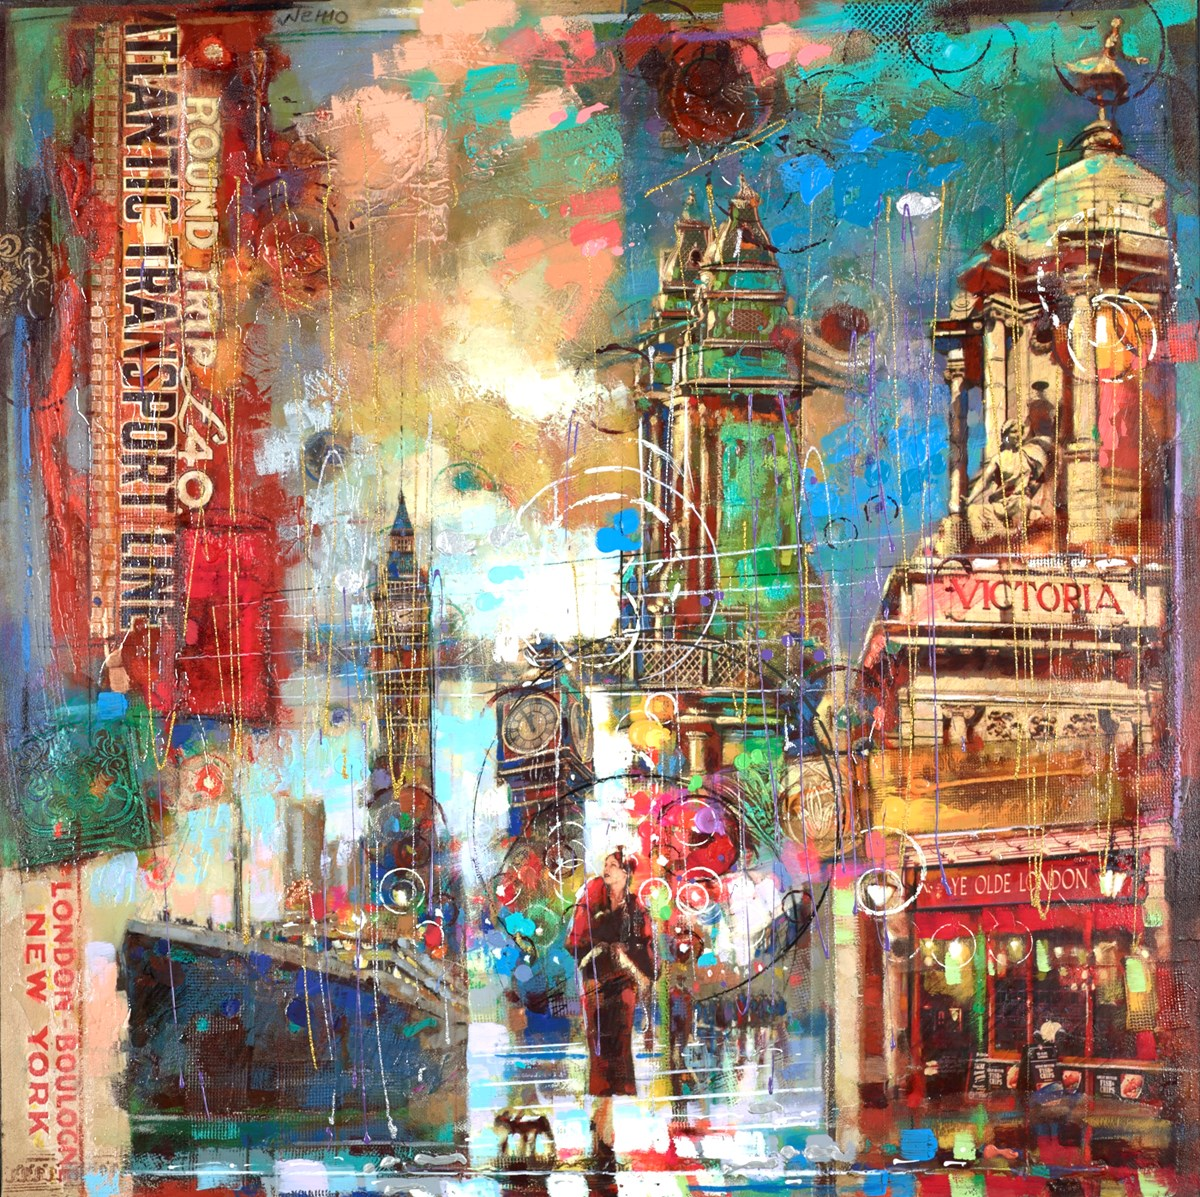 At Ye Olde London by nemo -  sized 40x40 inches. Available from Whitewall Galleries